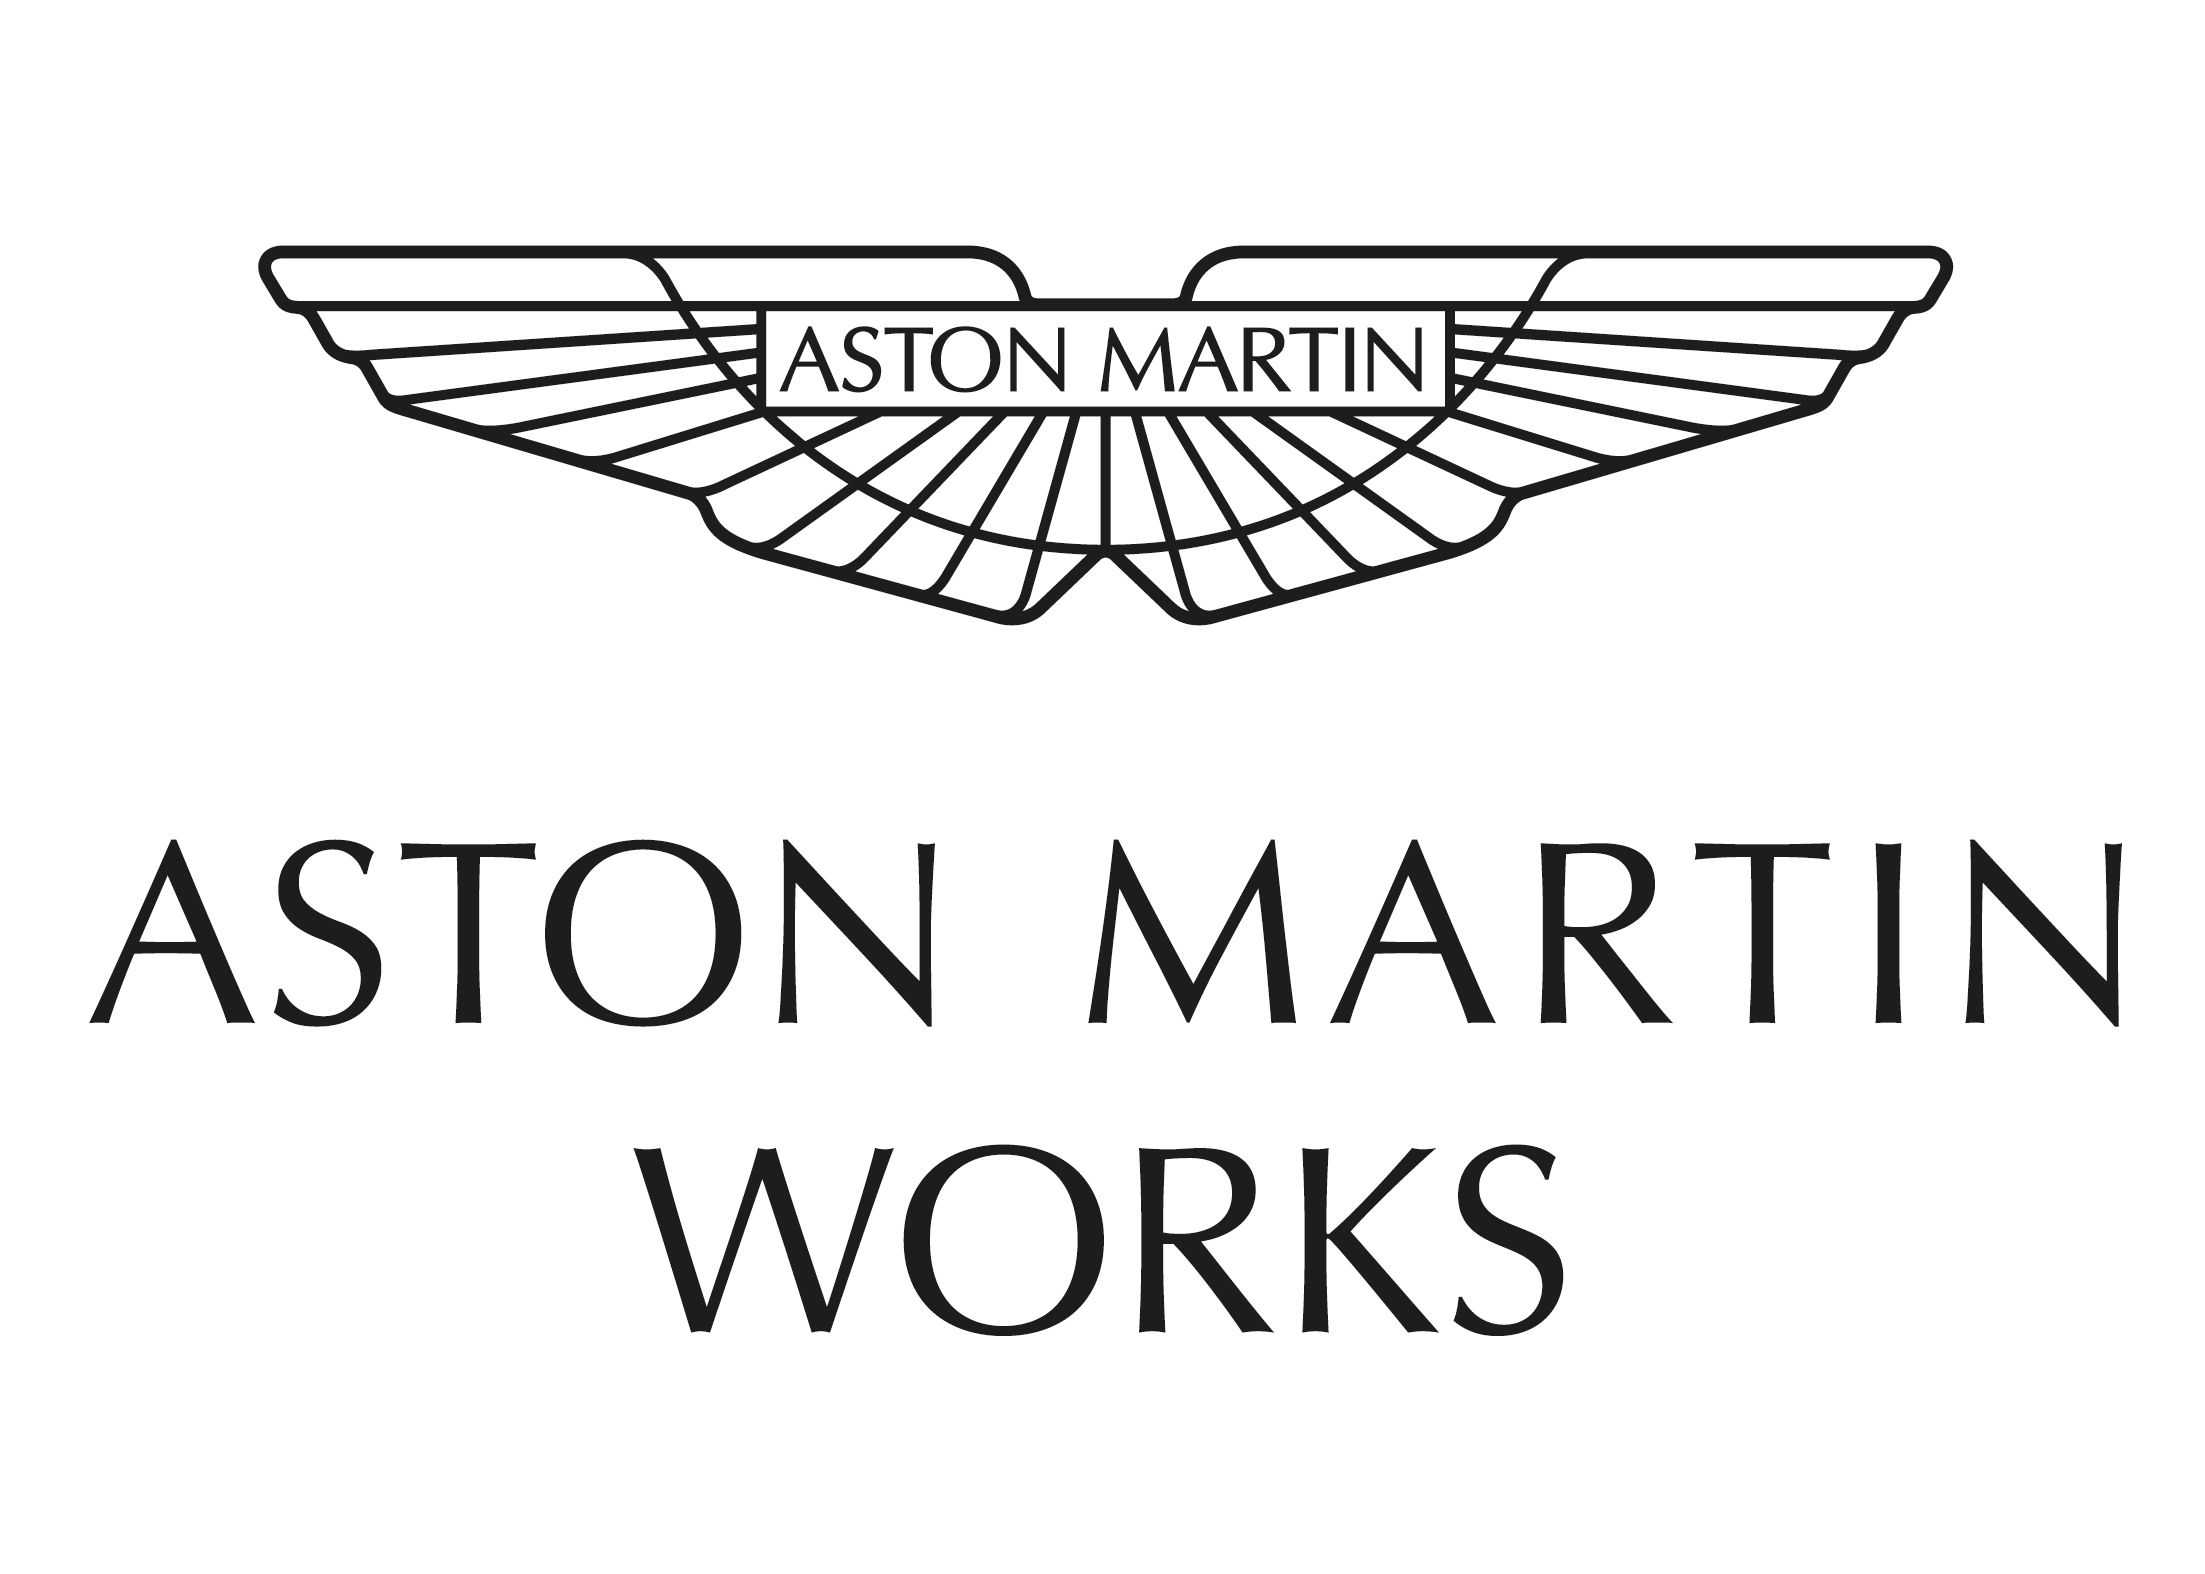 Used Aston Martin V8 Vantage [Pre-90] cars for sale with